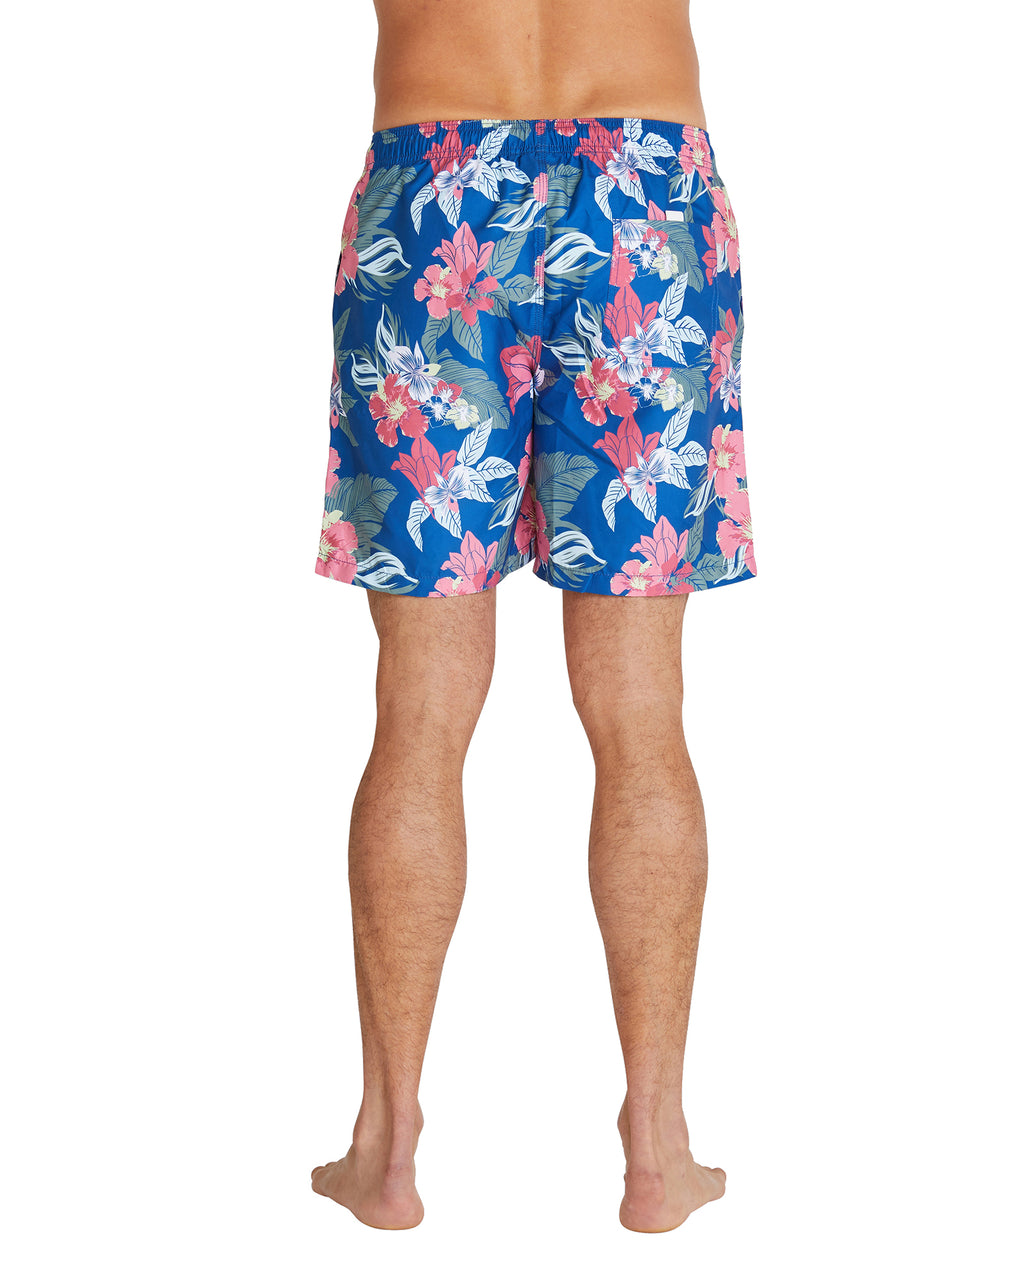 Swim Short - The Farrelly - Denim